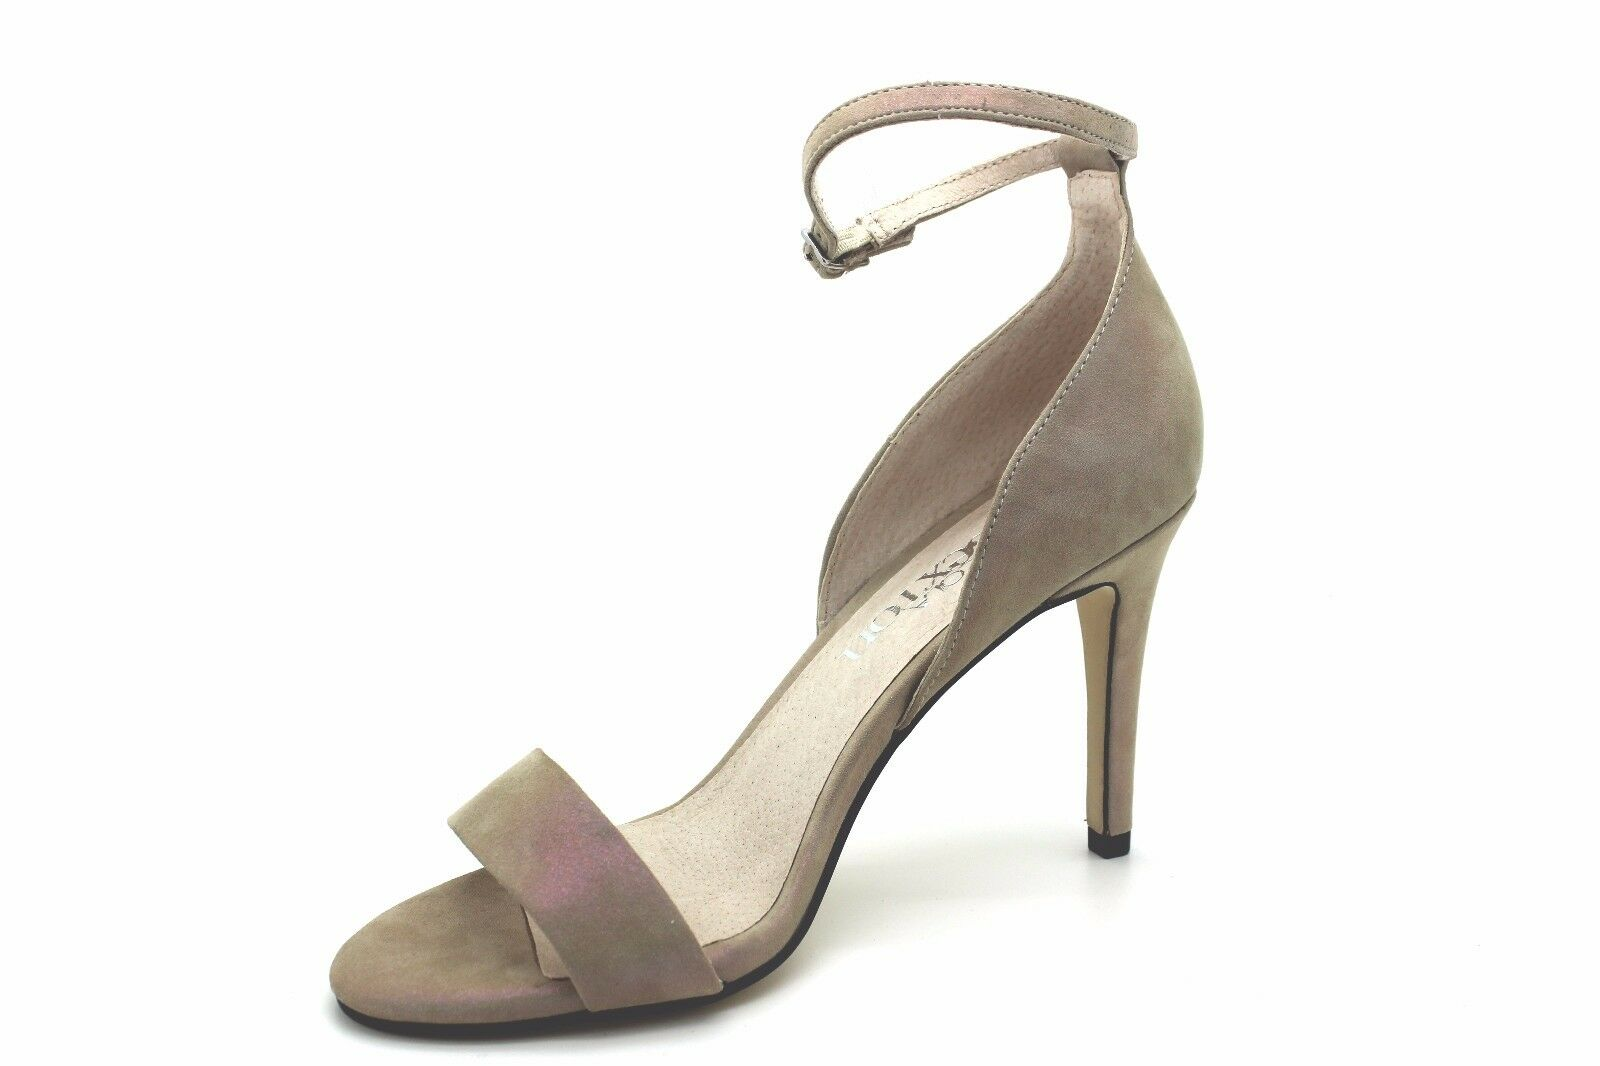 Ankle Strap Pearlised Hand Made Designer shoes - UK Size 6 - Brand New & Boxed